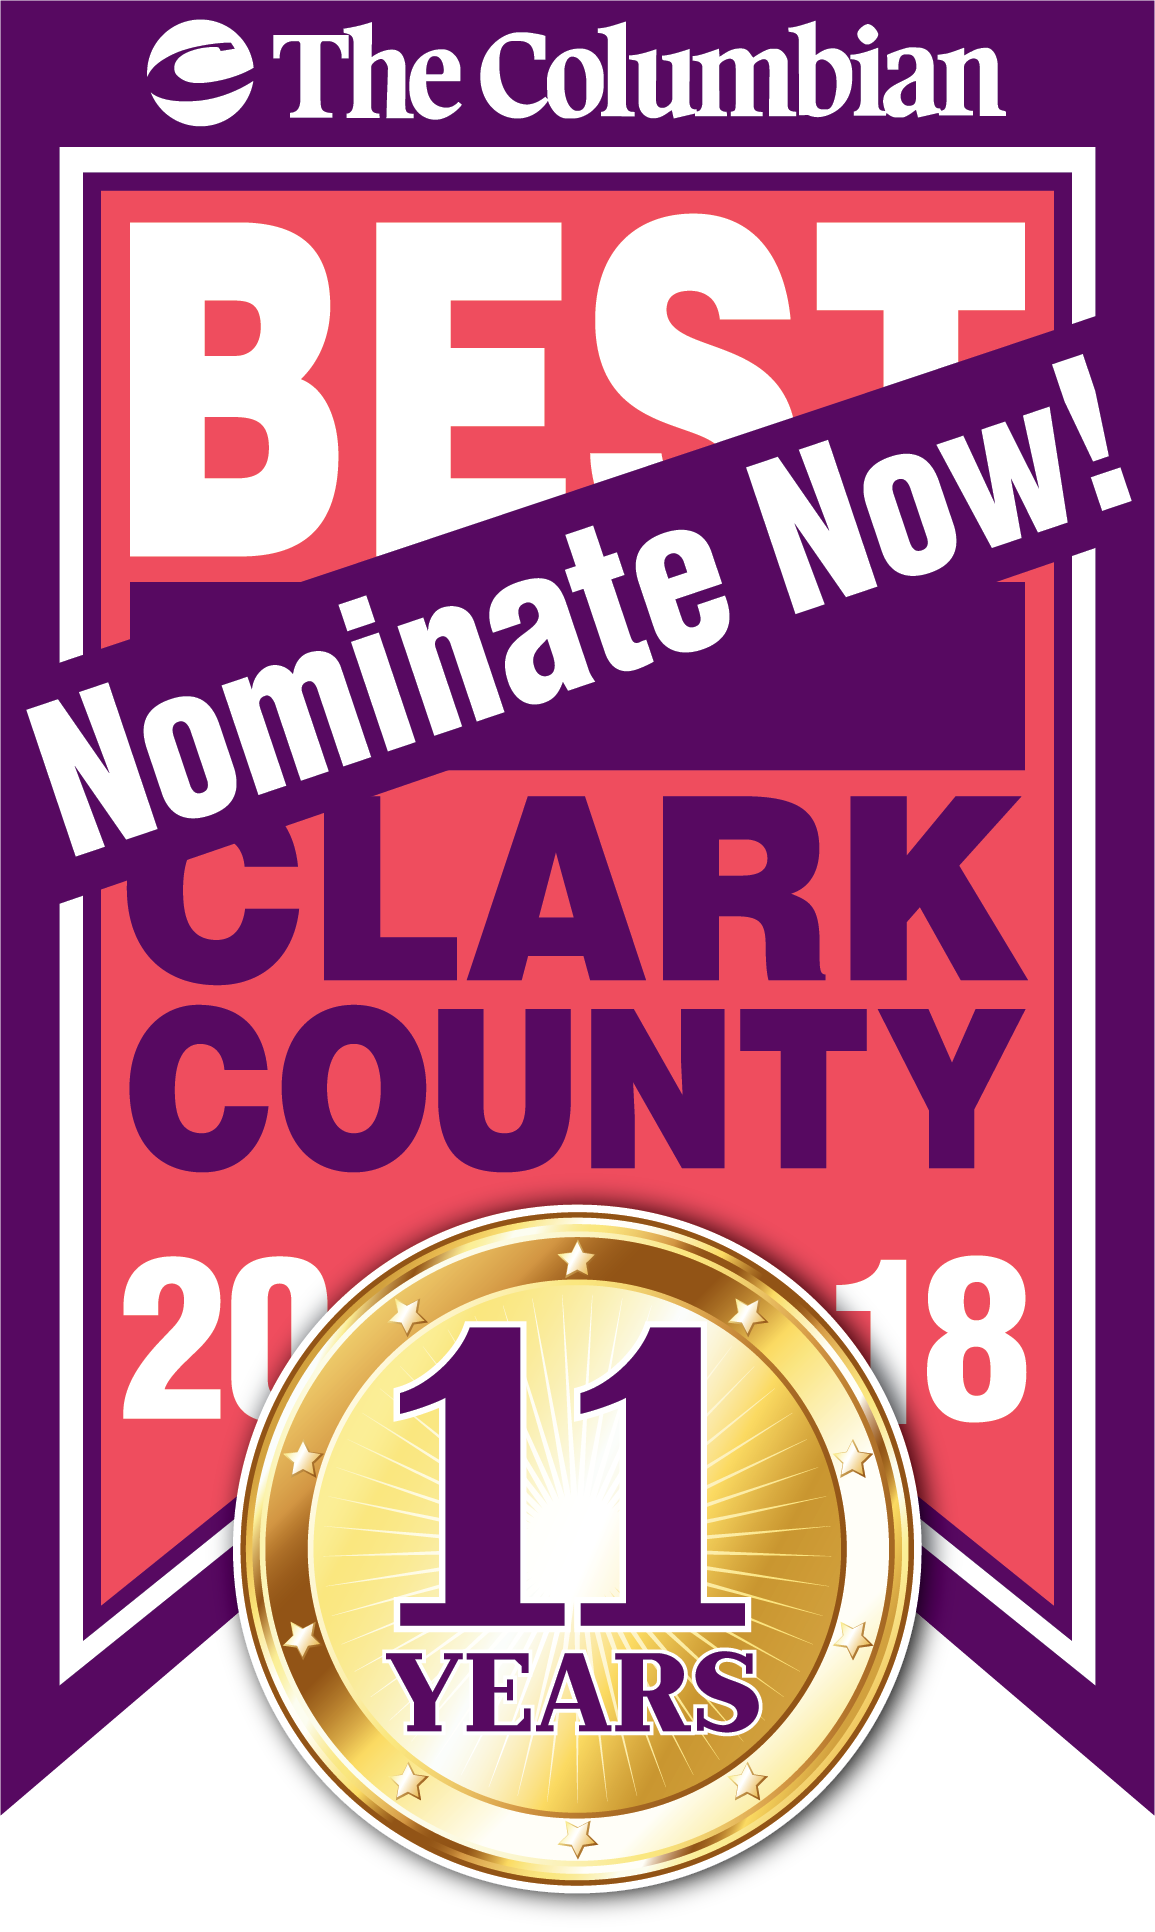 The Columbian is hosting the Best of Clark County Contest for 2018!